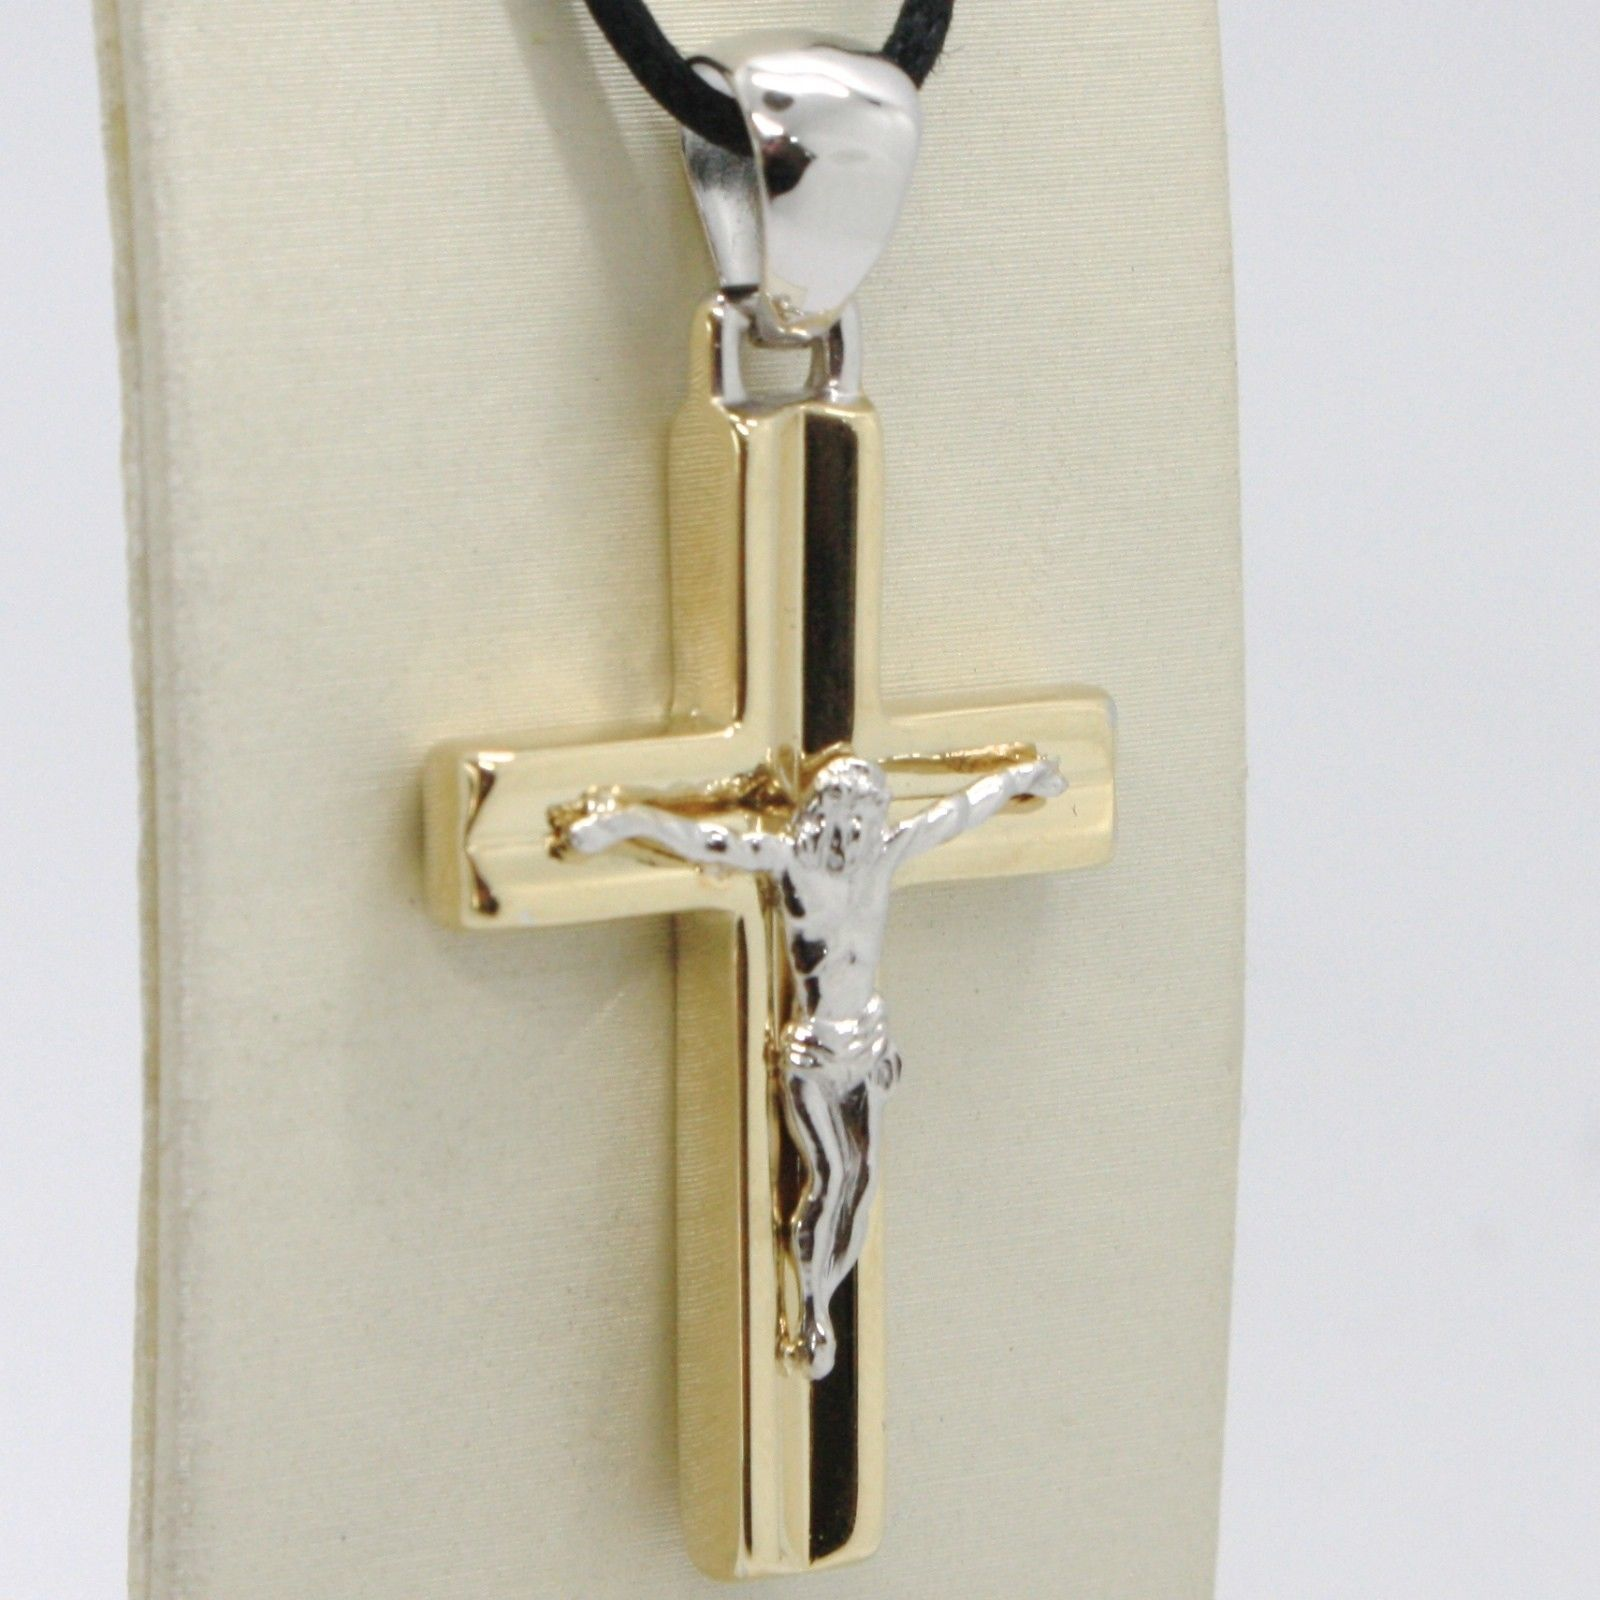 18K YELLOW WHITE GOLD JESUS CROSS PENDANT SQUARED 1.6 INCHES, 4.1 CM, ITALY MADE